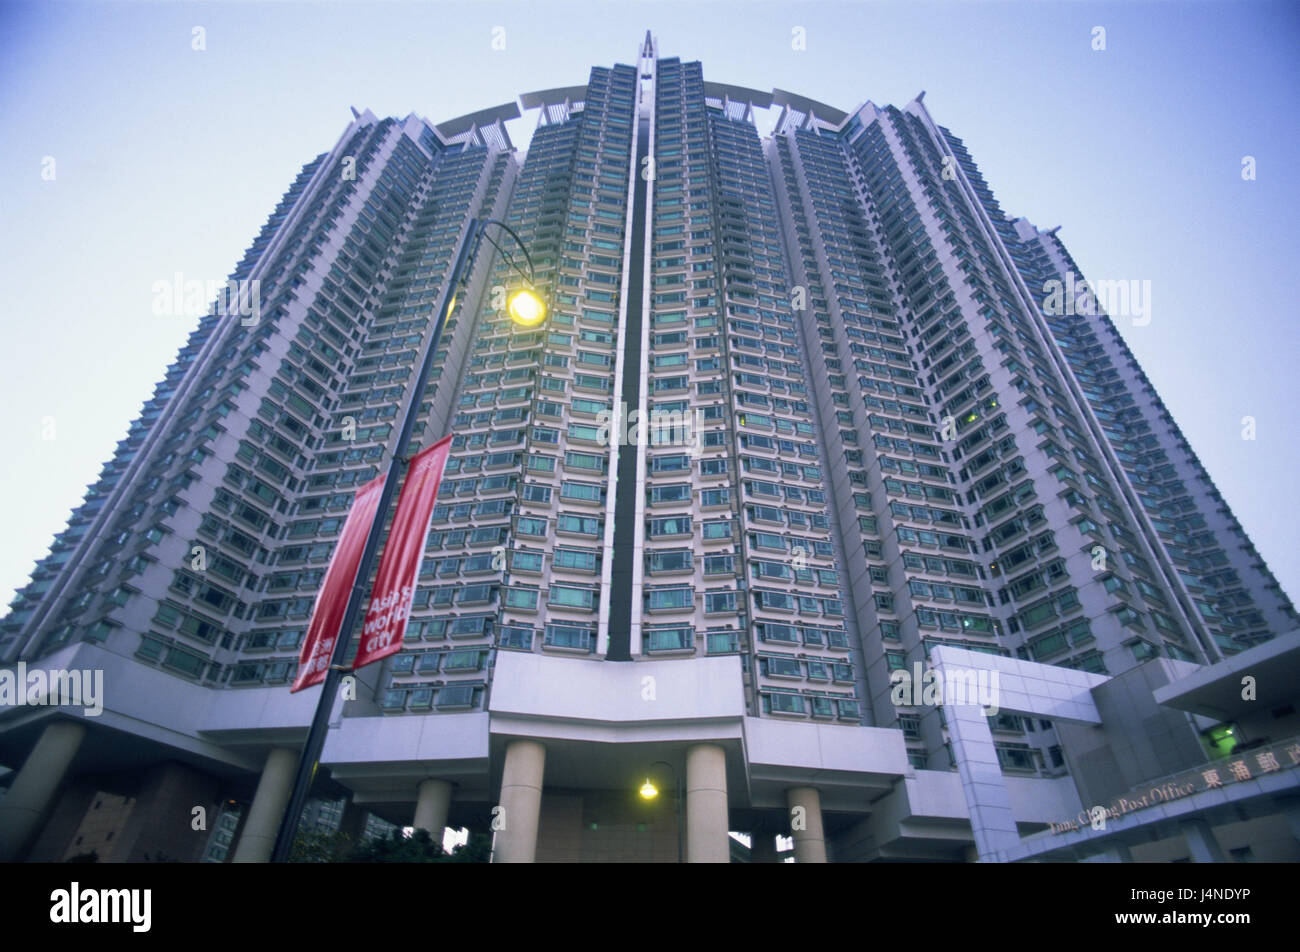 China, Hong Kong, Lantau Iceland, Tung Chung, high rise, Asia, town, island, building, house, residential house, - Stock Image